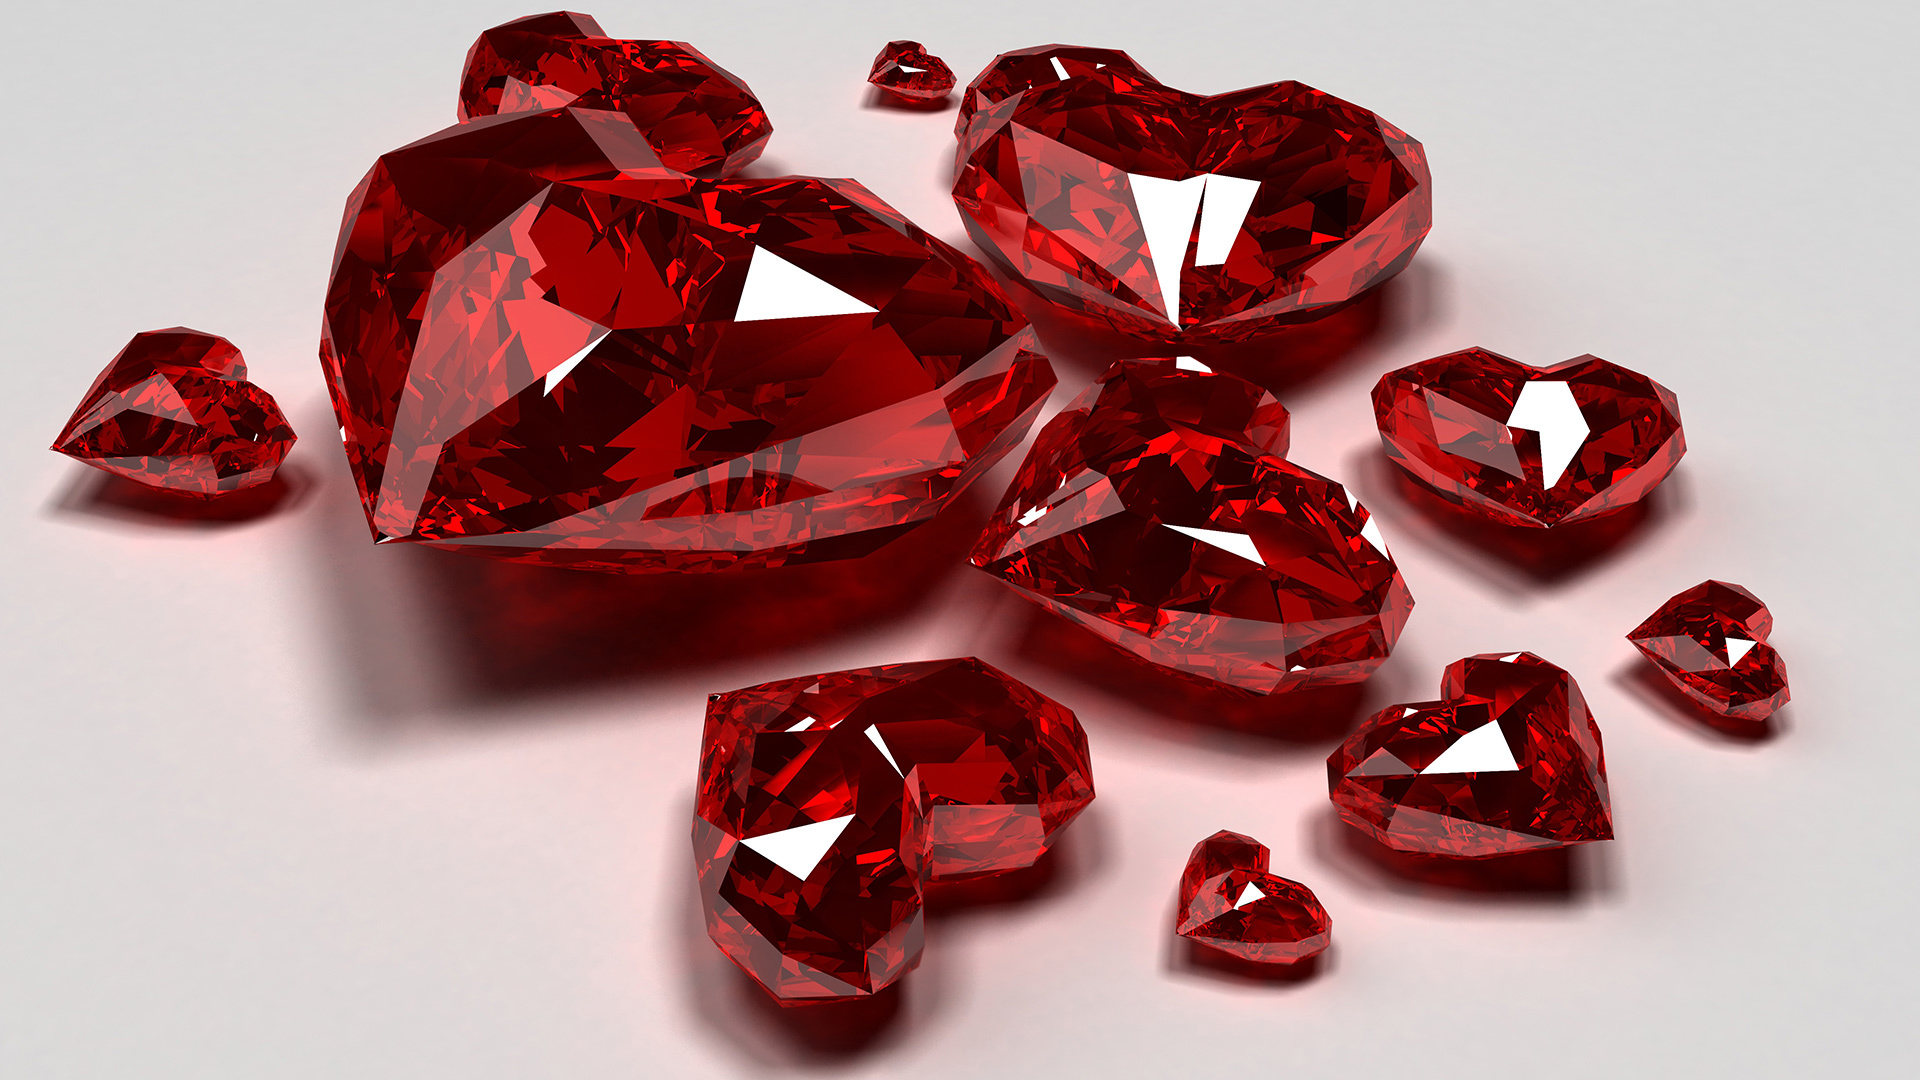 valentines day crystal heart free hd wallpaper